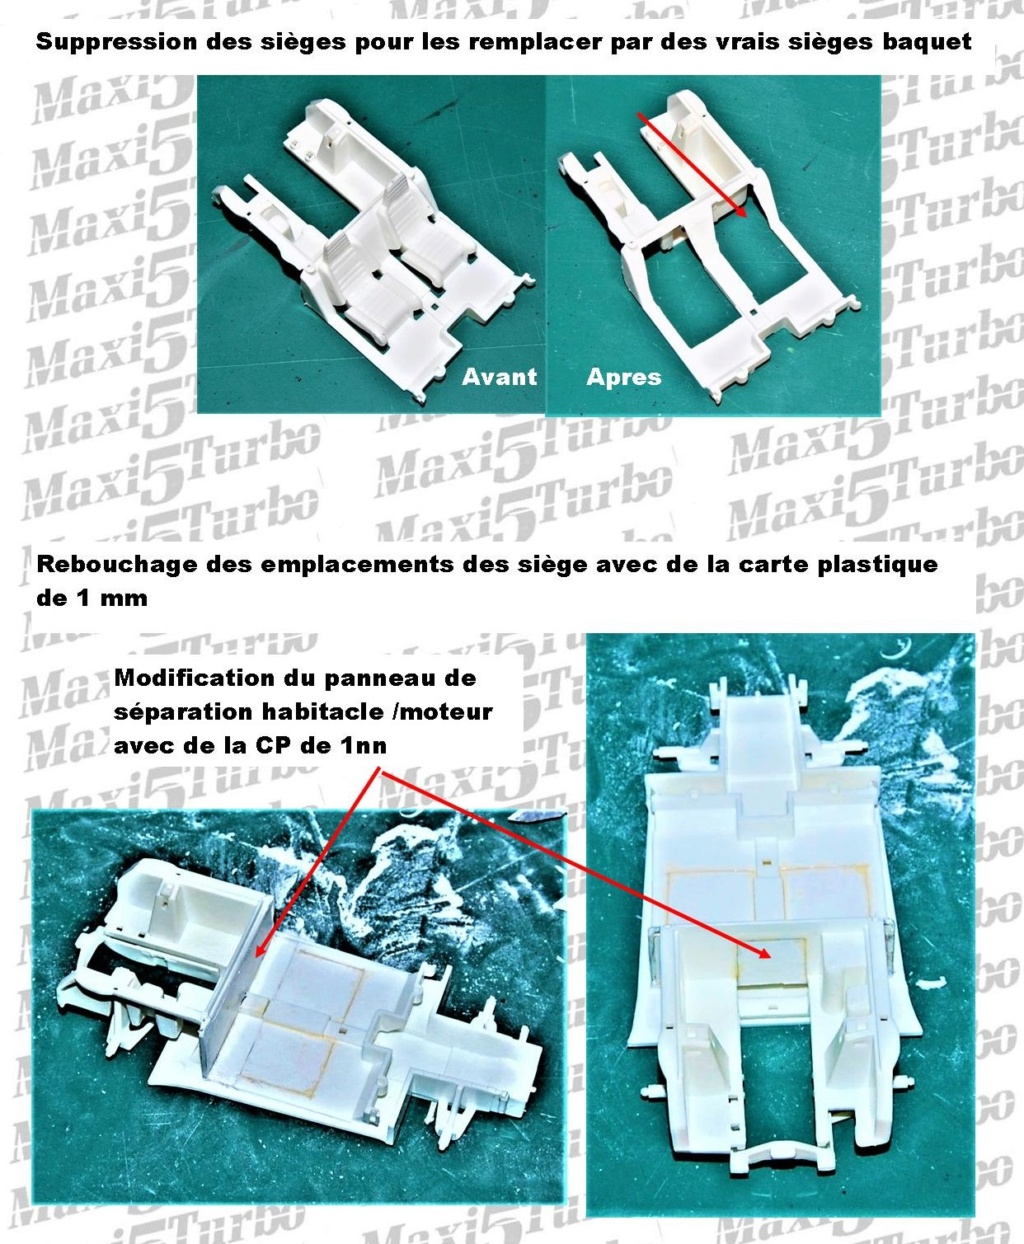 (1/24) Renault 5 Maxi turbo Ref 80717 ( Hors delai ) - Page 5 6110